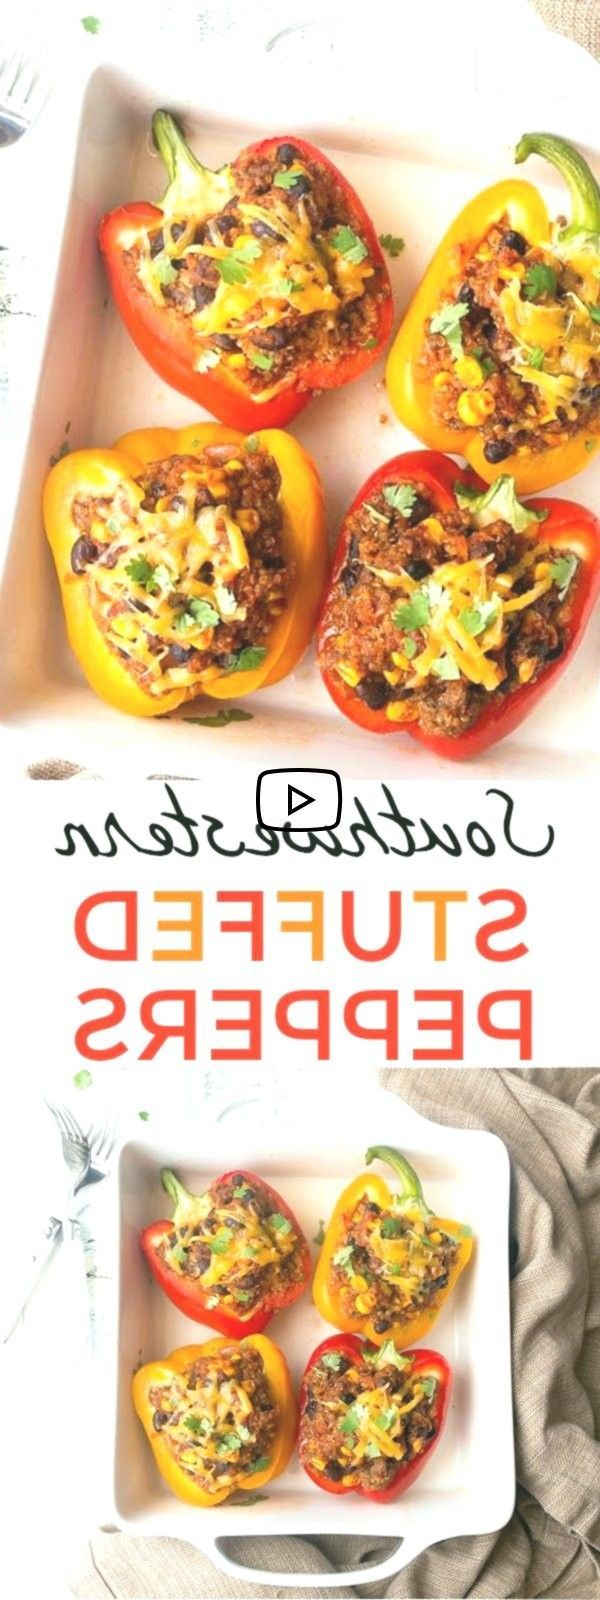 southwestern Stuffed Peppers for Two. Dinners for Two, easy dinner ideas, health..., Stuffed Peppers for Two. Dinners for Two, easy dinner ideas, healthy dinner ideas.